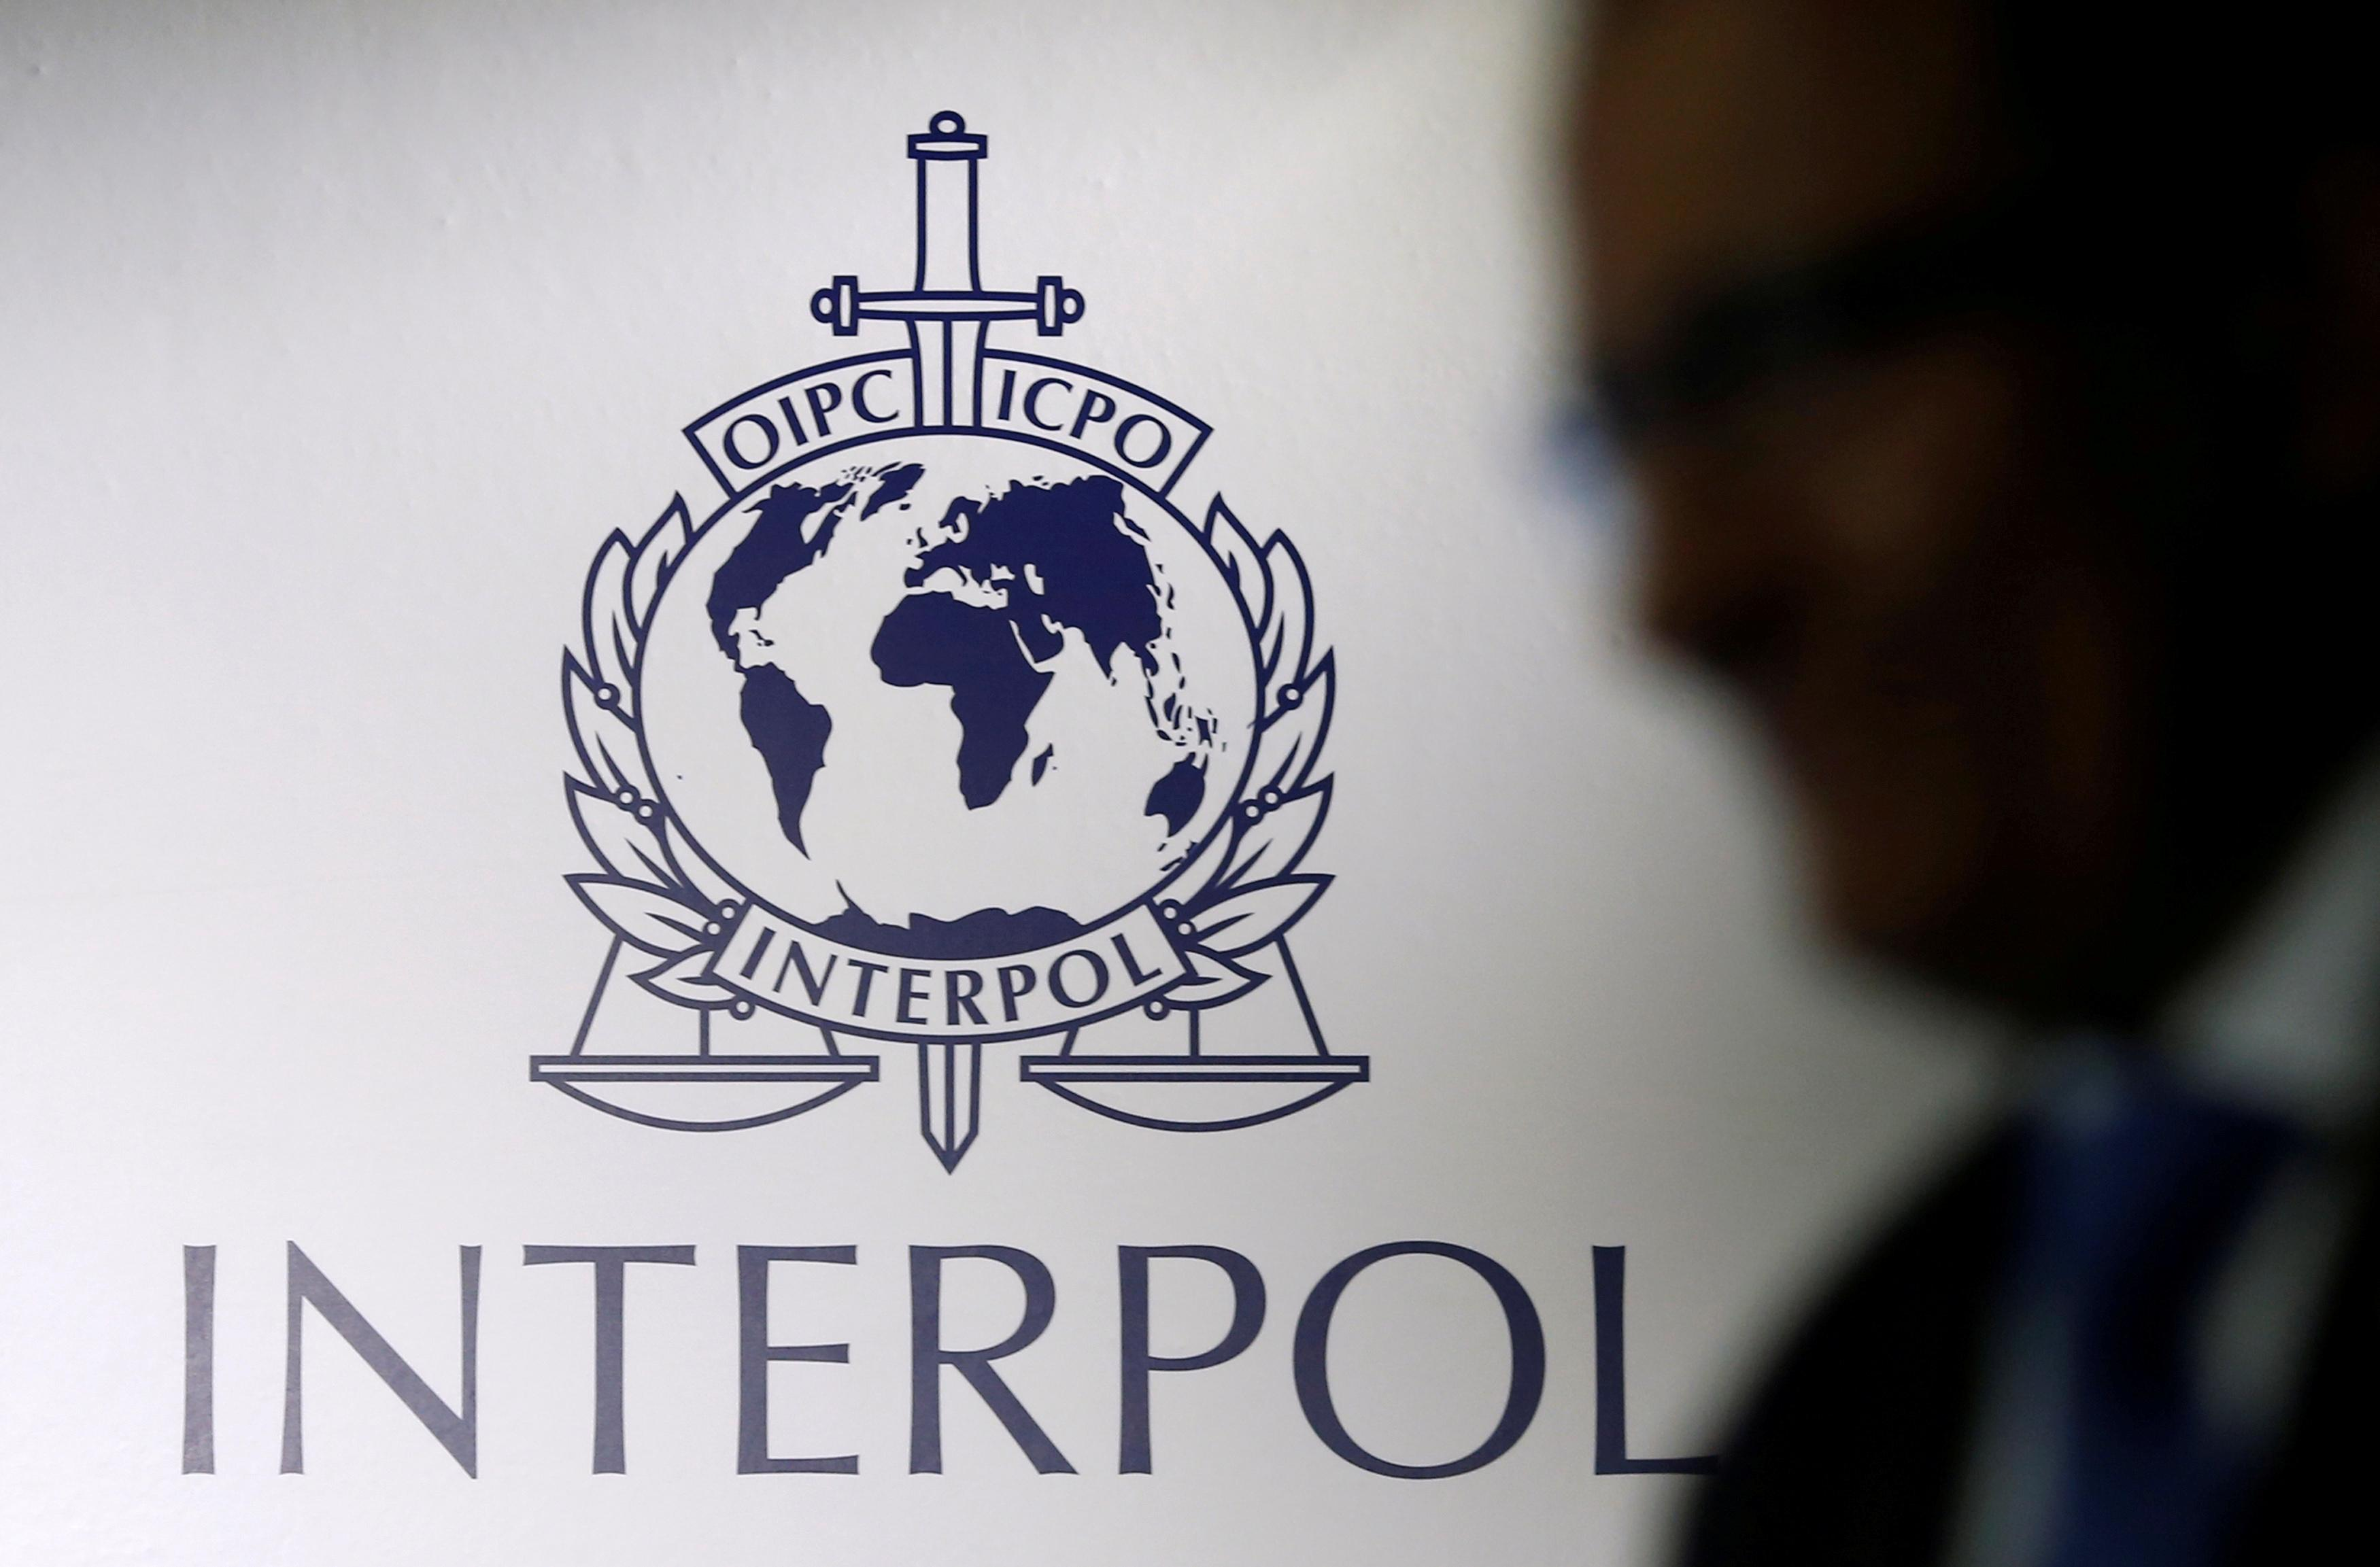 Exclusive: Interpol plans to condemn encryption spread, citing...